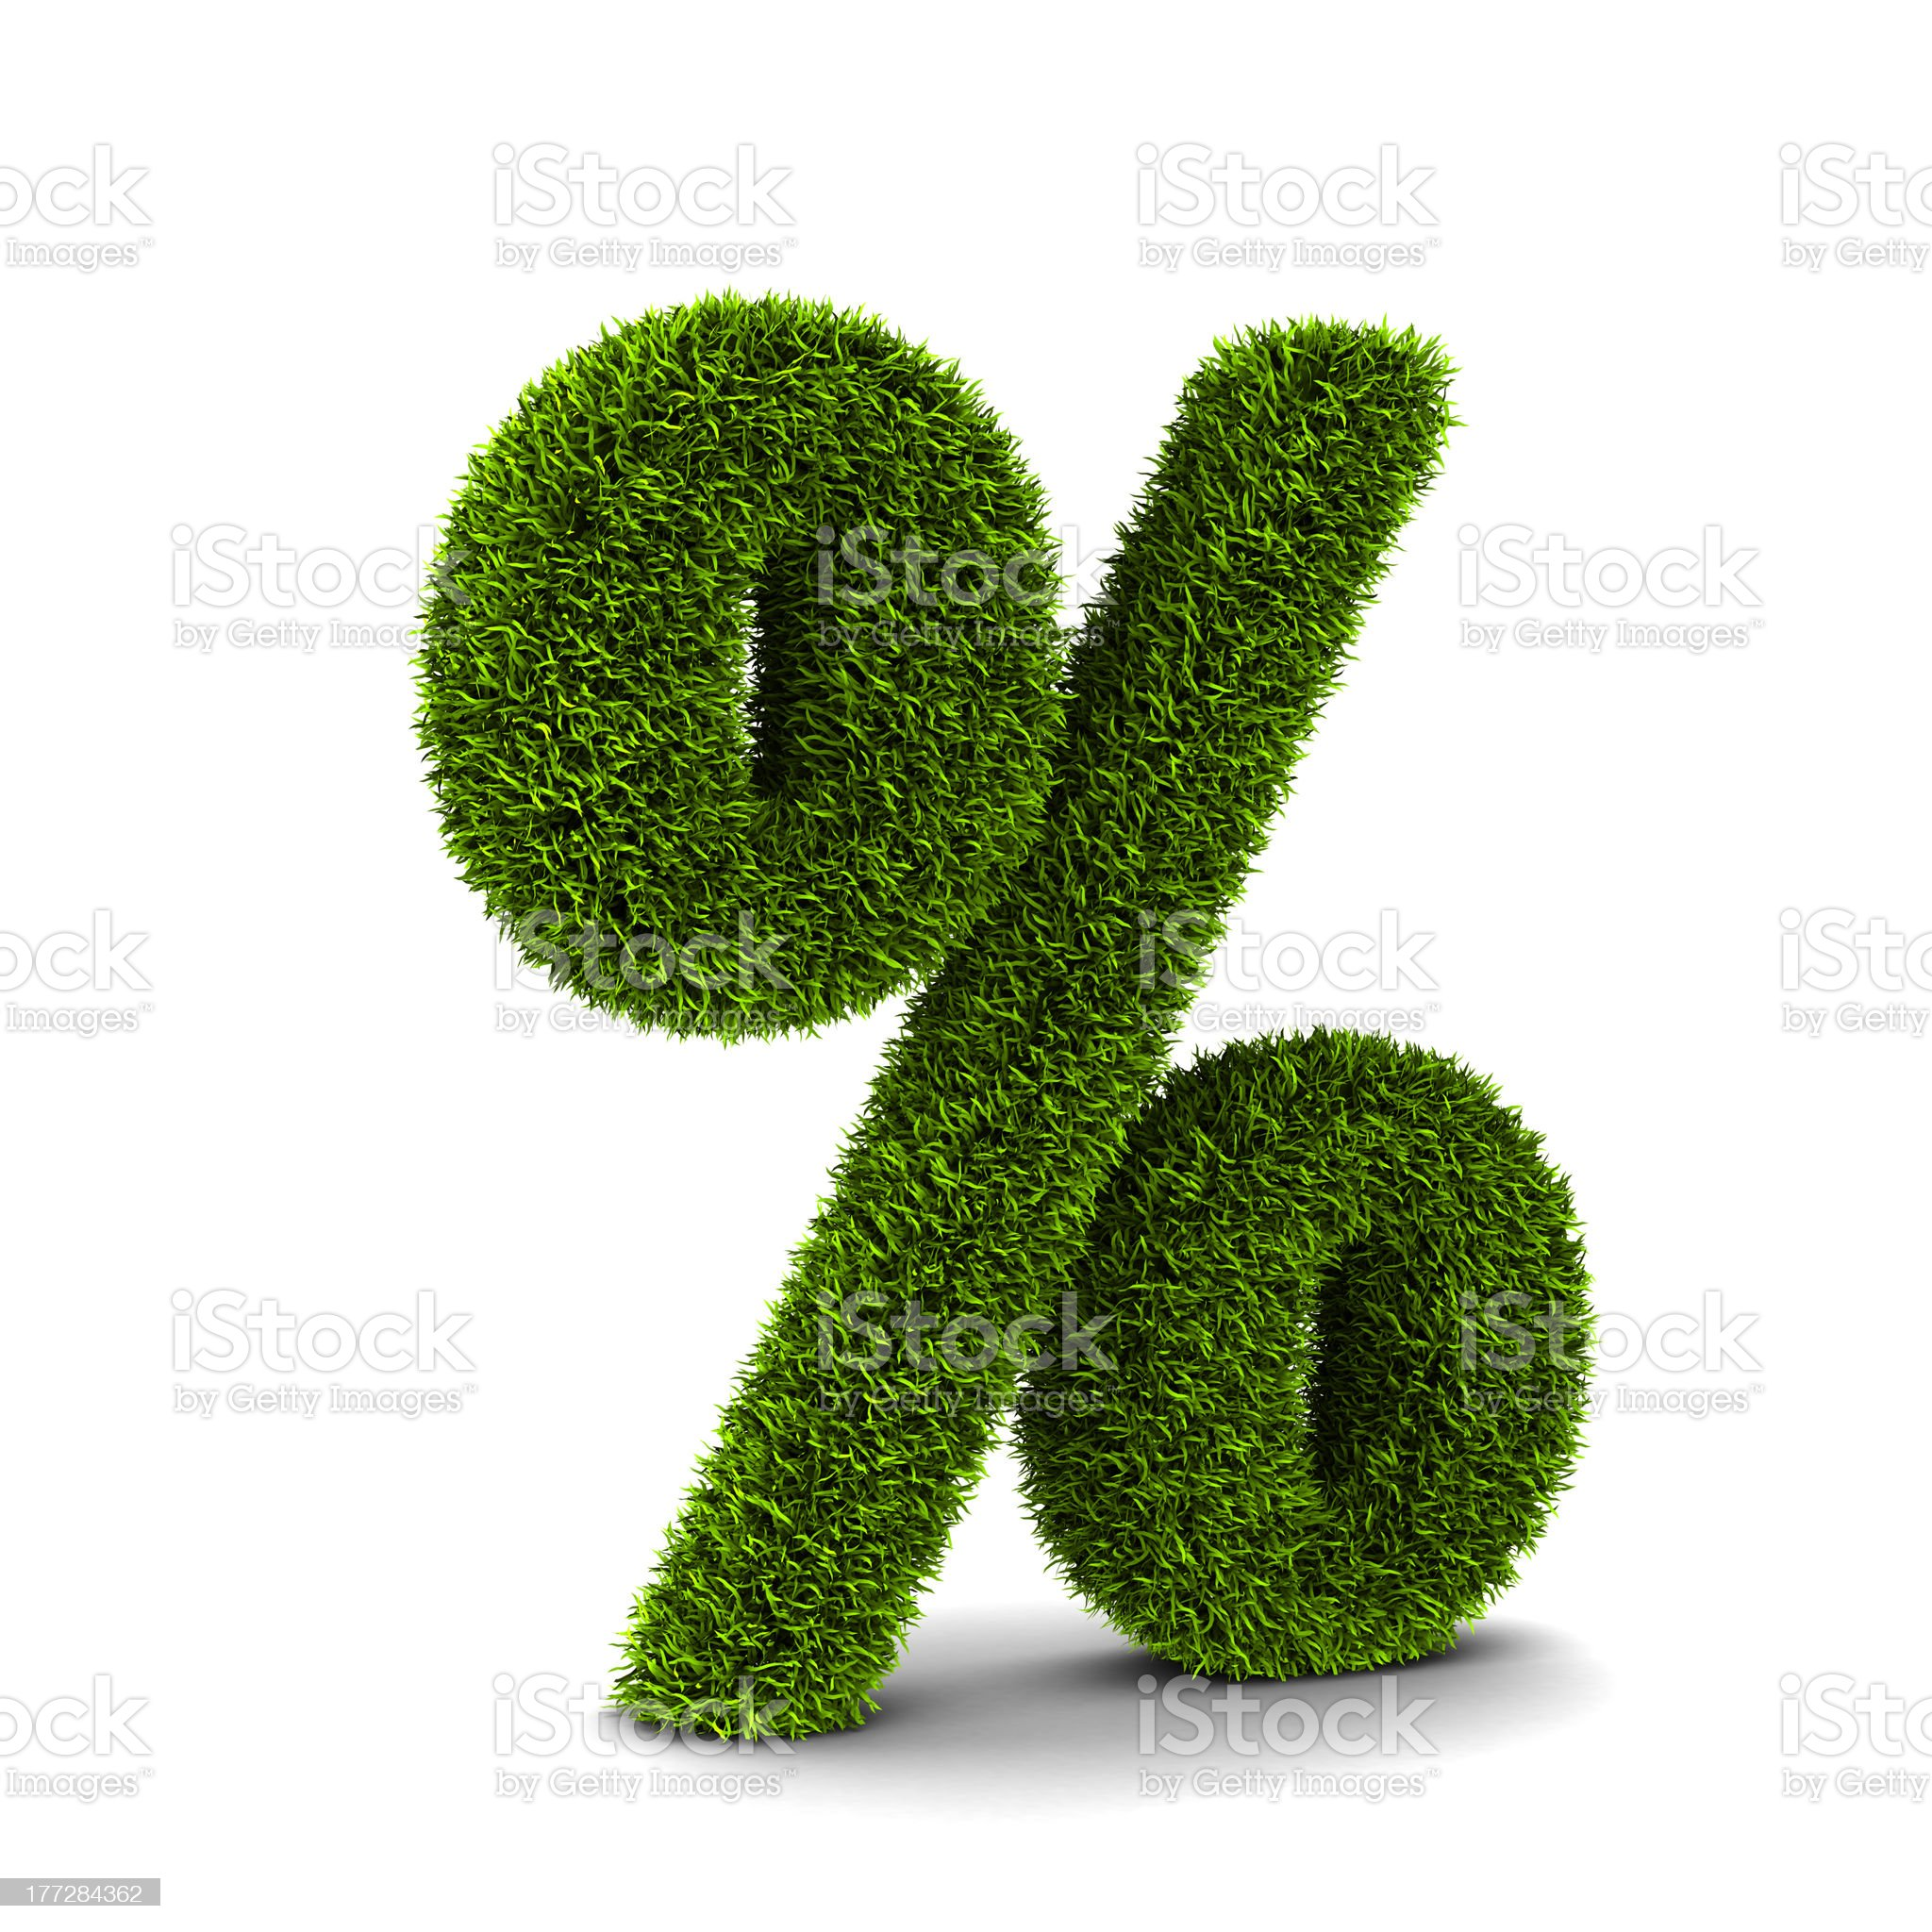 Grassed symbol of percent royalty-free stock photo